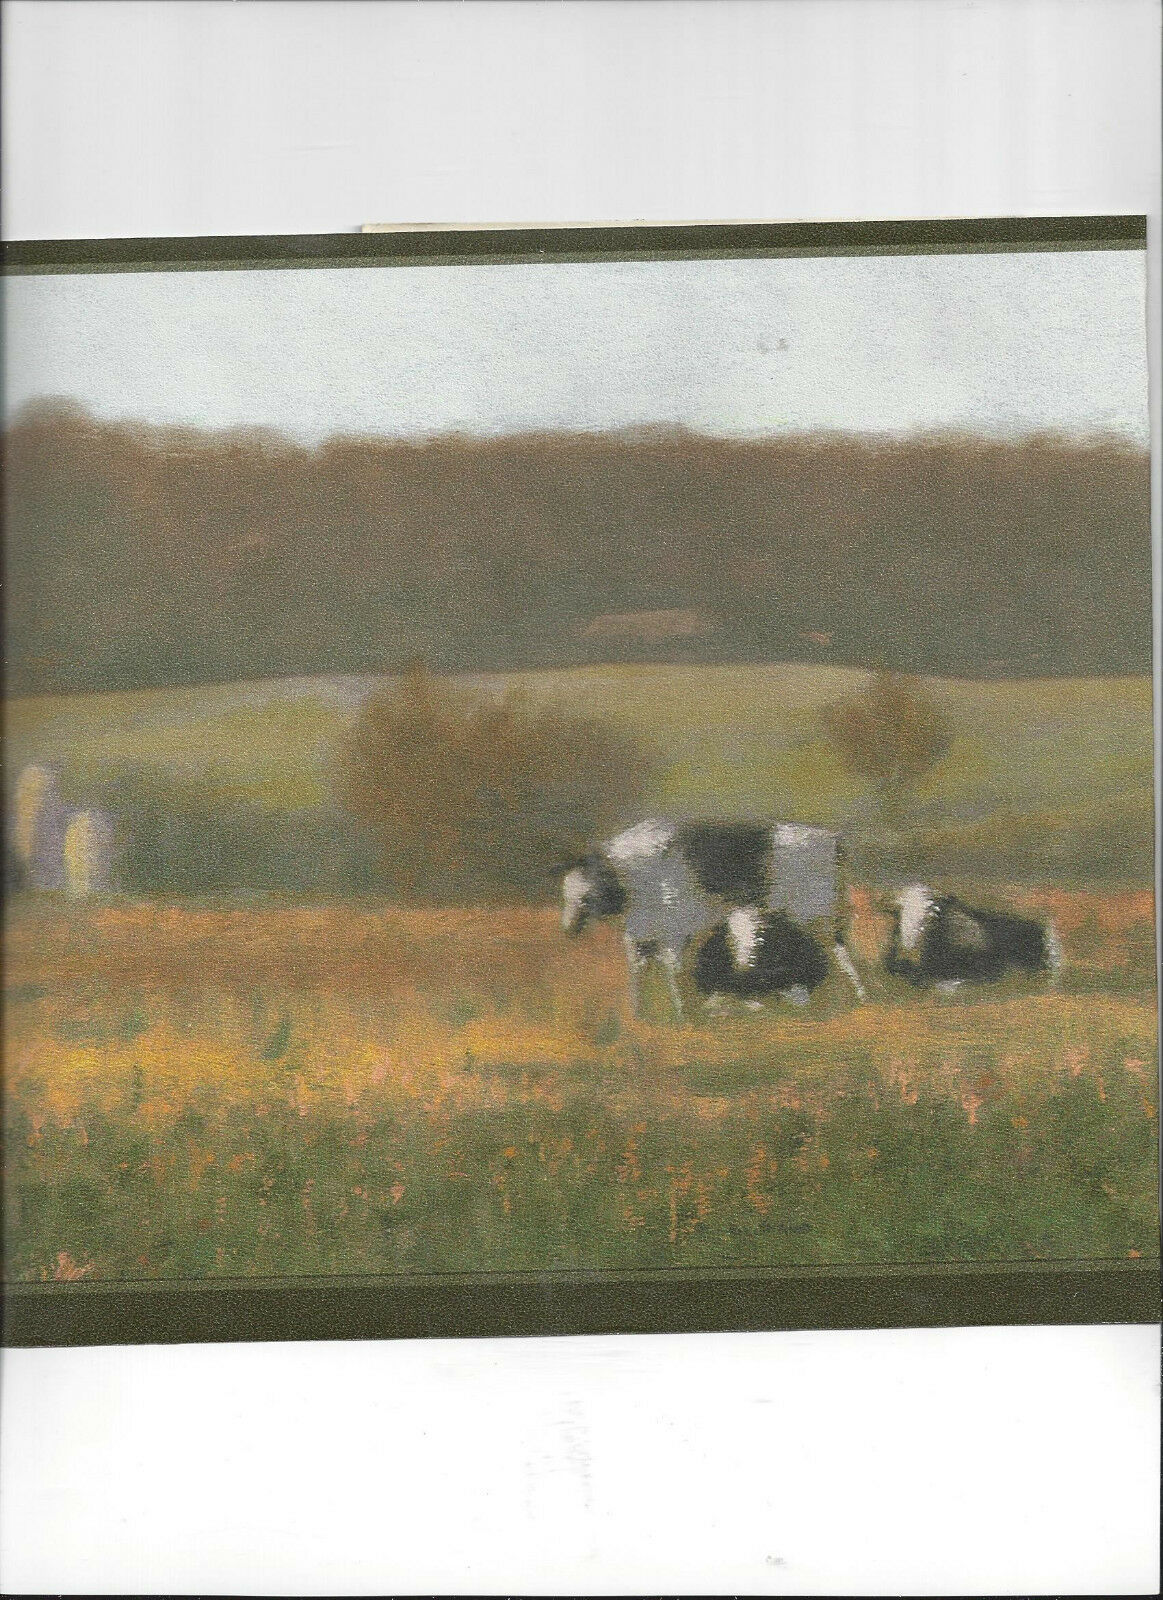 Black White Cows Pasture Farm Country Wallpaper Border New Arrival Ranch Barn For Sale Online